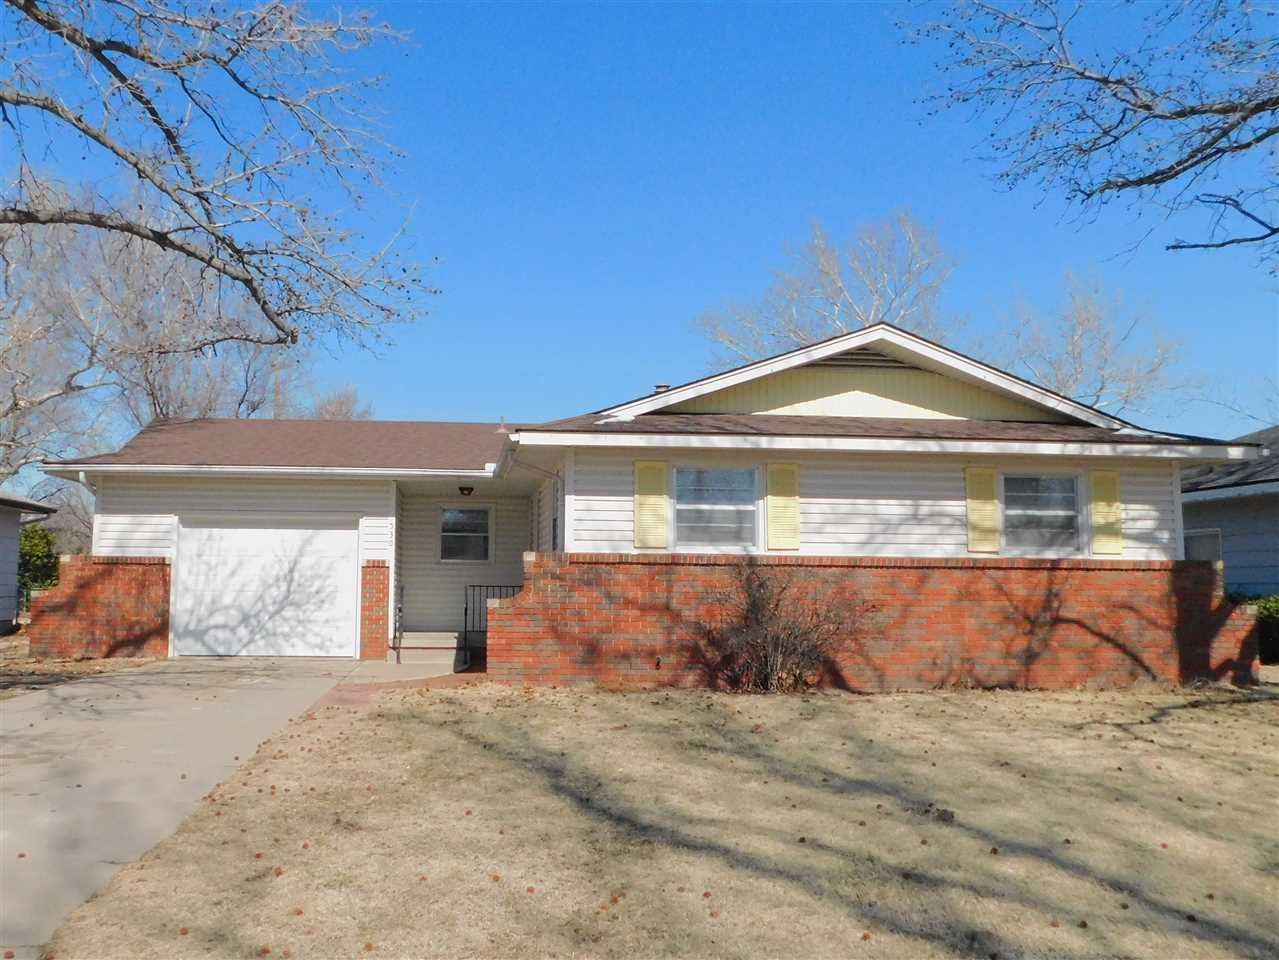 Well-kept 2 bedroom, 1 1/2 bath home with a 1 car attached garage, that has a double garage door lea